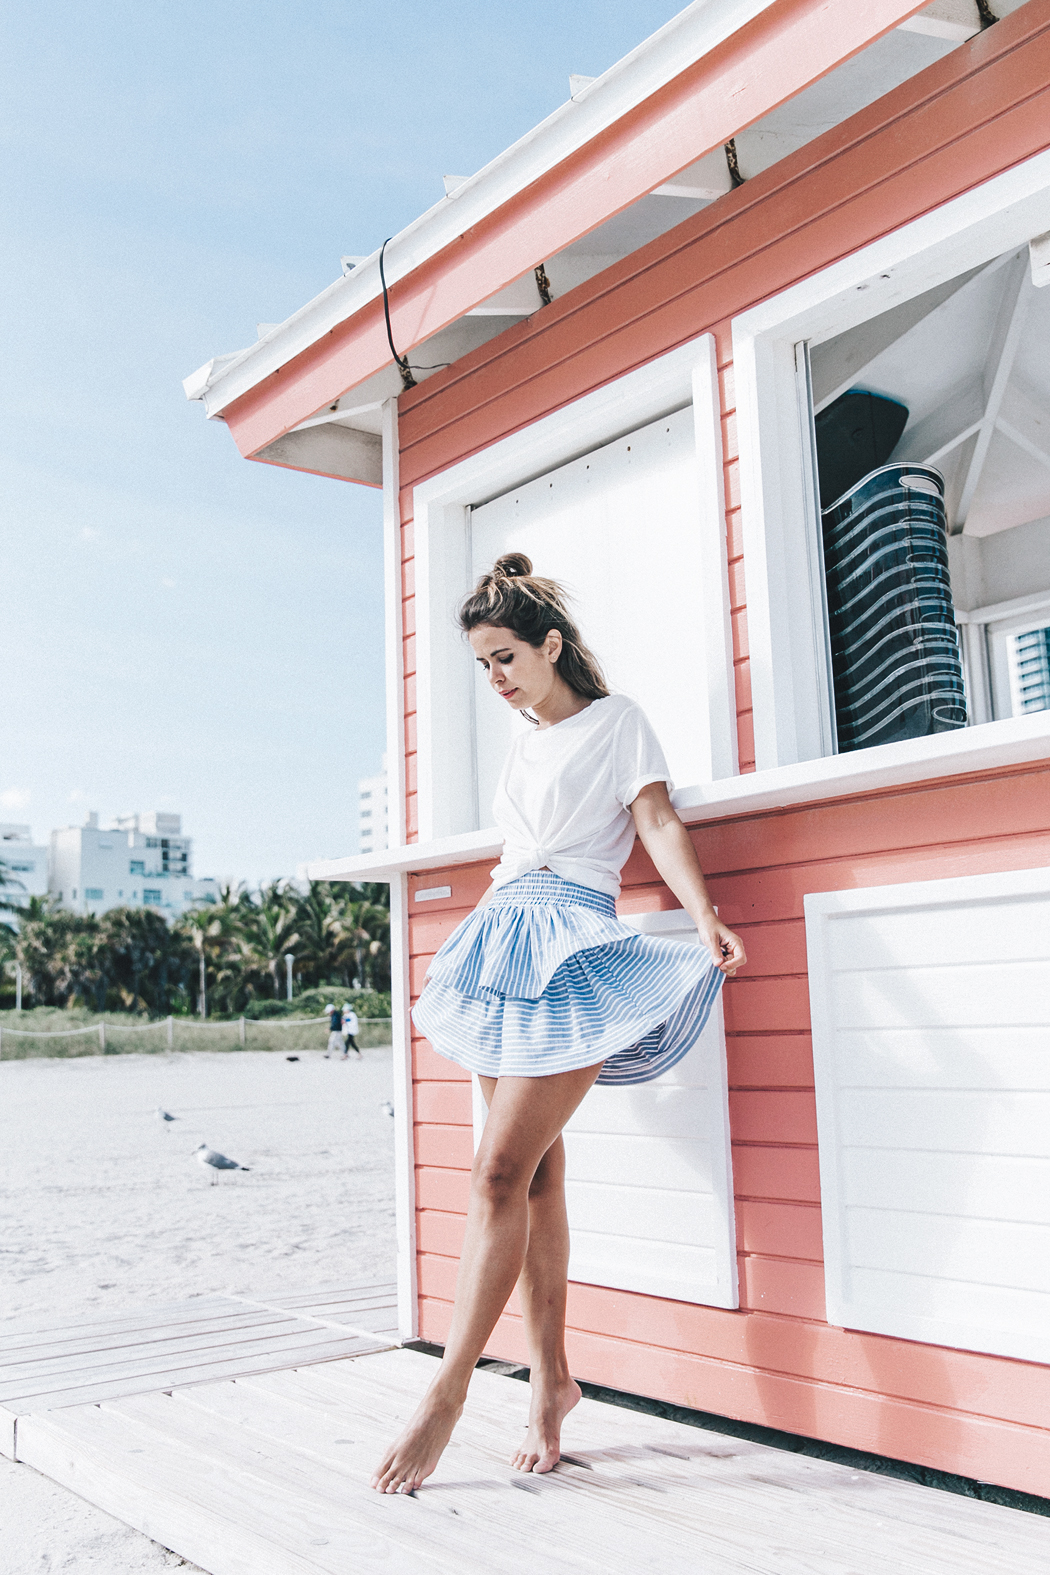 Miami-Striped_Skirt-Knotted_Top-Beach-South_Beach-Candy_Colors-Collage_On_The_Road-Street_Style-OUtfit-84